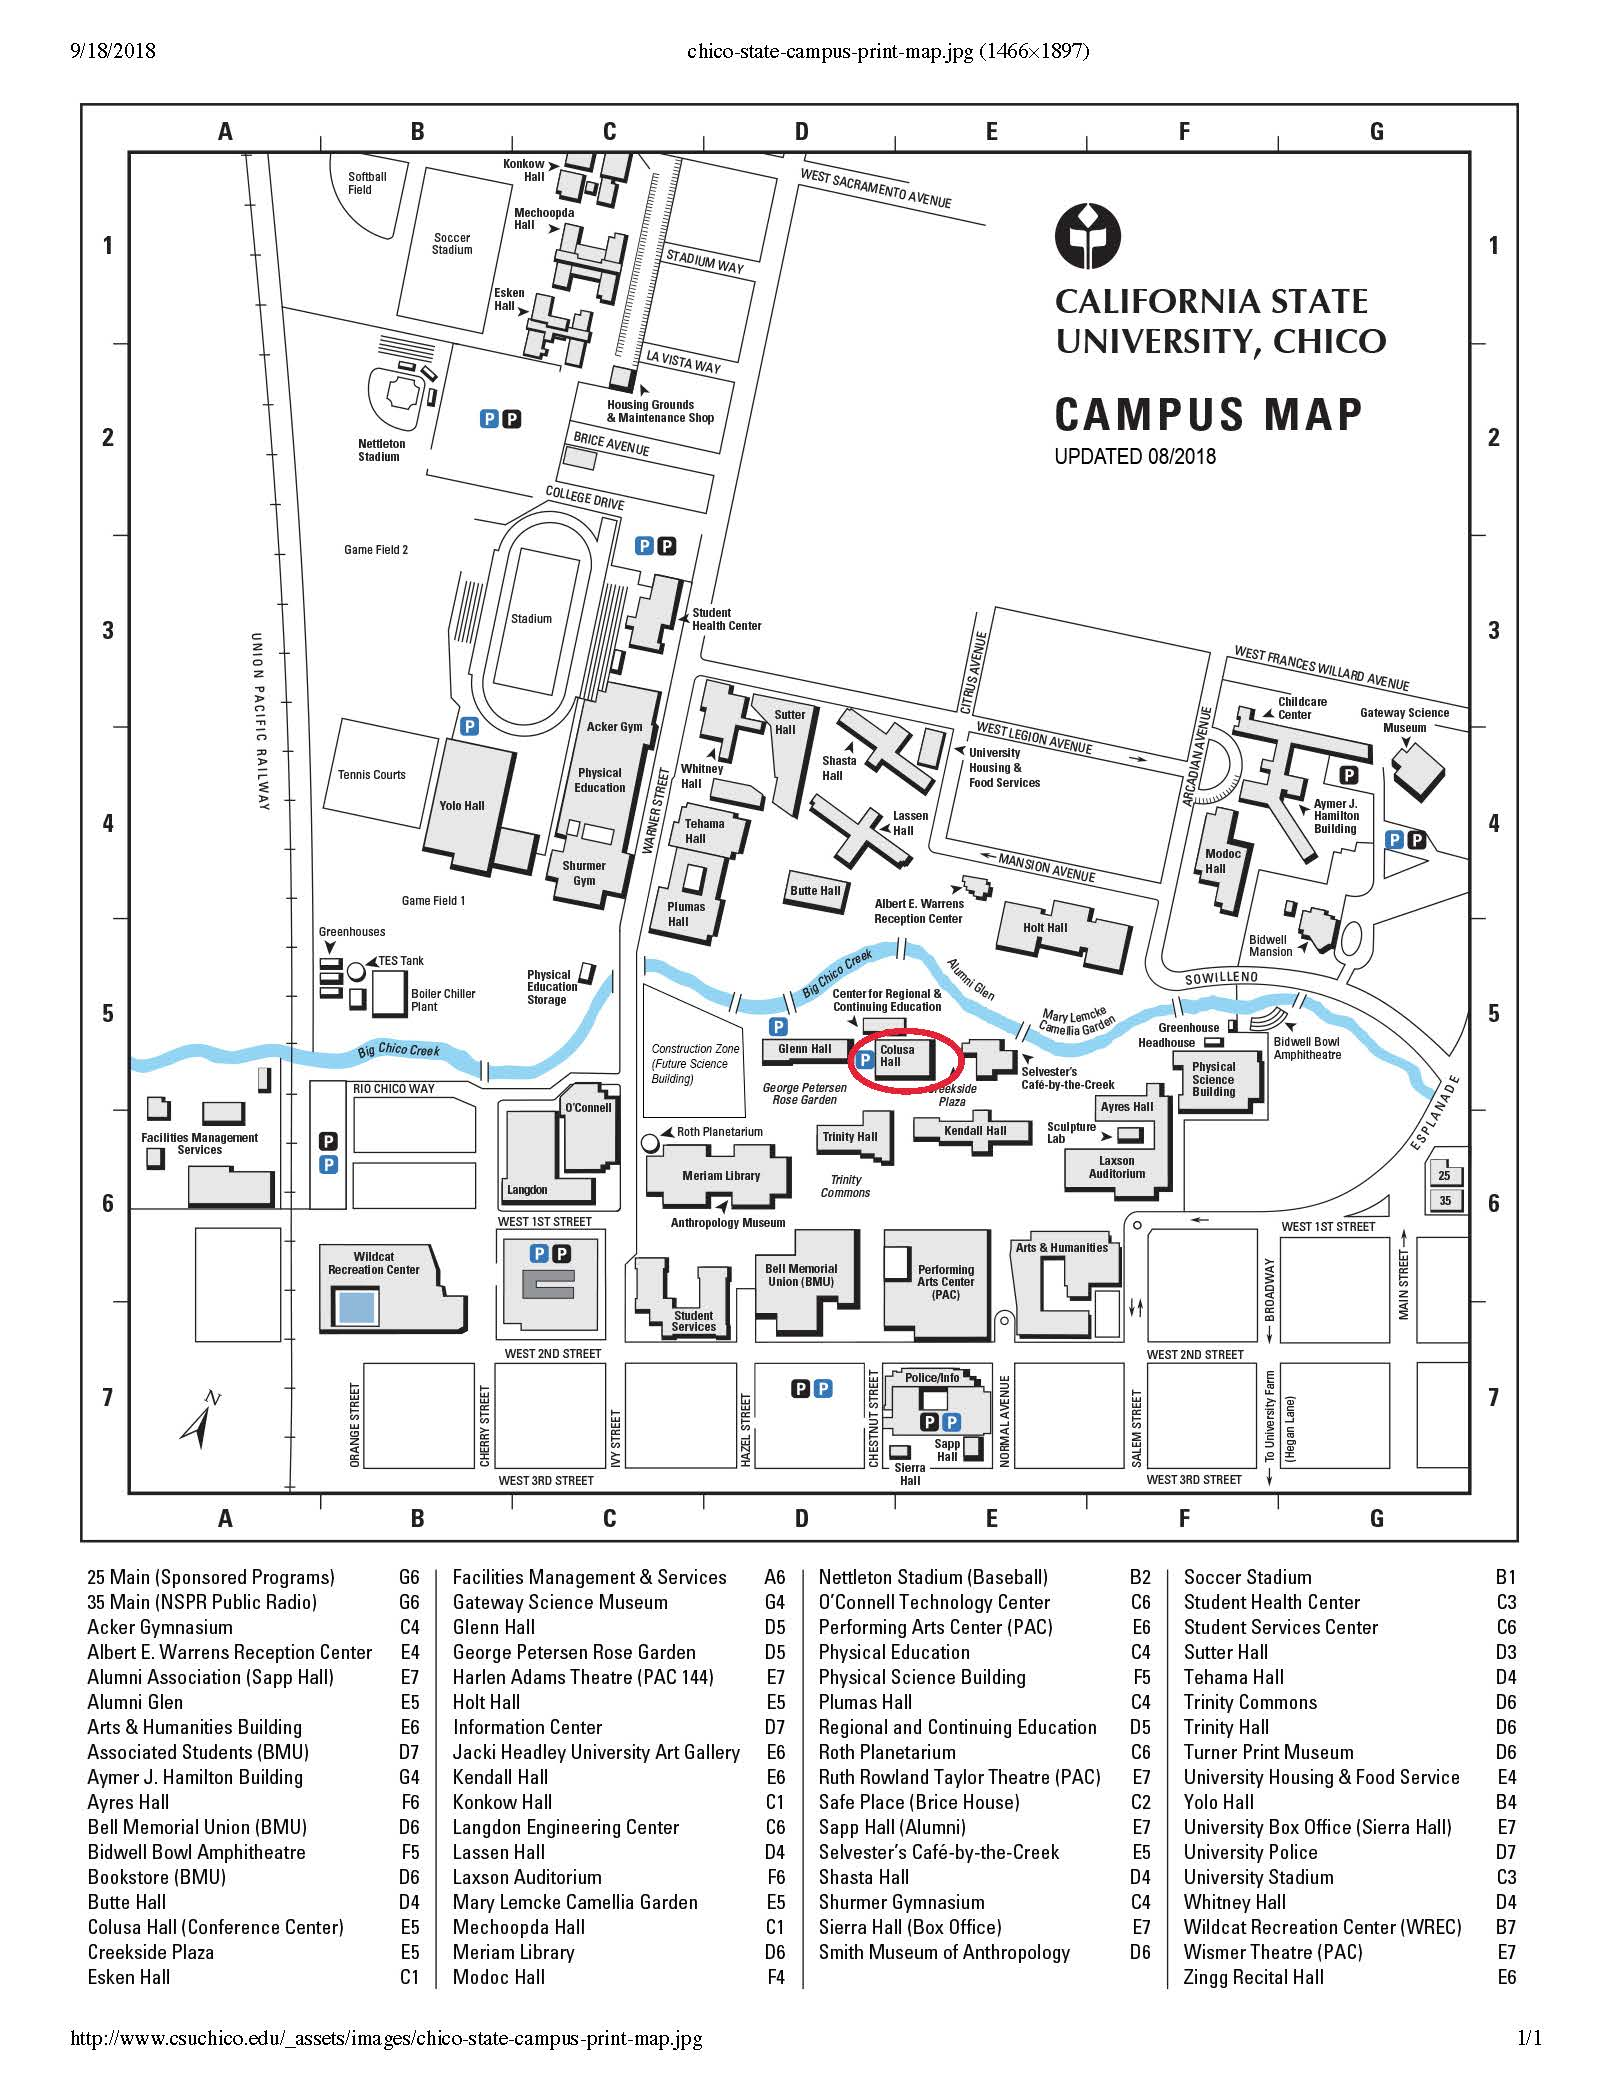 chico-state-campus-print-map.jpg (1466×1897) | Society for ... on csus campus map, sf state campus map, california state university bakersfield campus map, sacramento city college campus map, wright state campus map, ohio state campus map, clark state campus map, ind state campus map, sonoma state university campus map, polk state campus map, washington state campus map, california state university sacramento map, nc state campus map, dakota state campus map, utah state campus map, wayne state college campus map, plymouth state university campus map, chico state university campus map, pacific campus map, jackson state campus map,